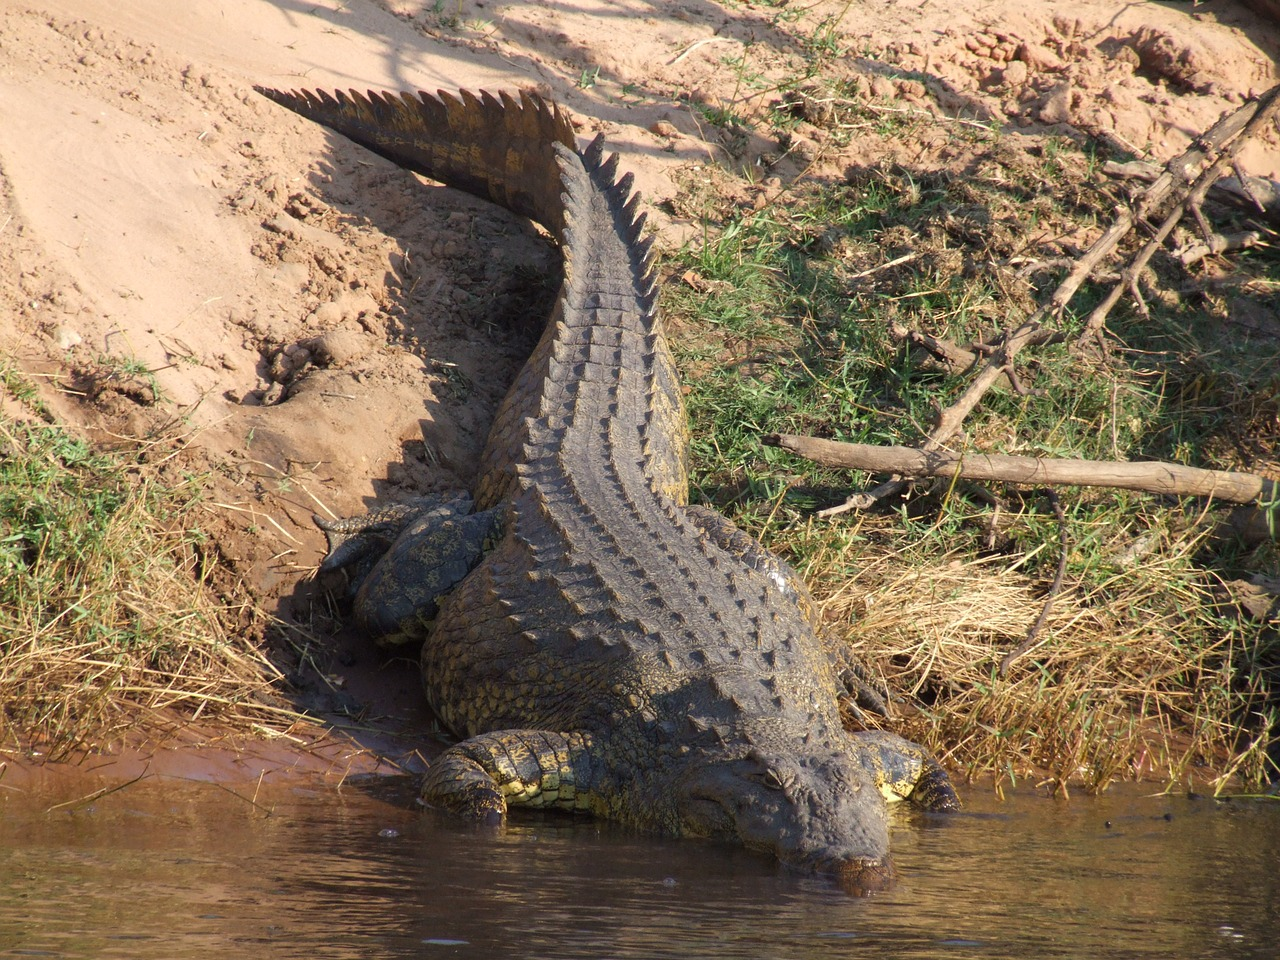 crocodile botswana africa free photo